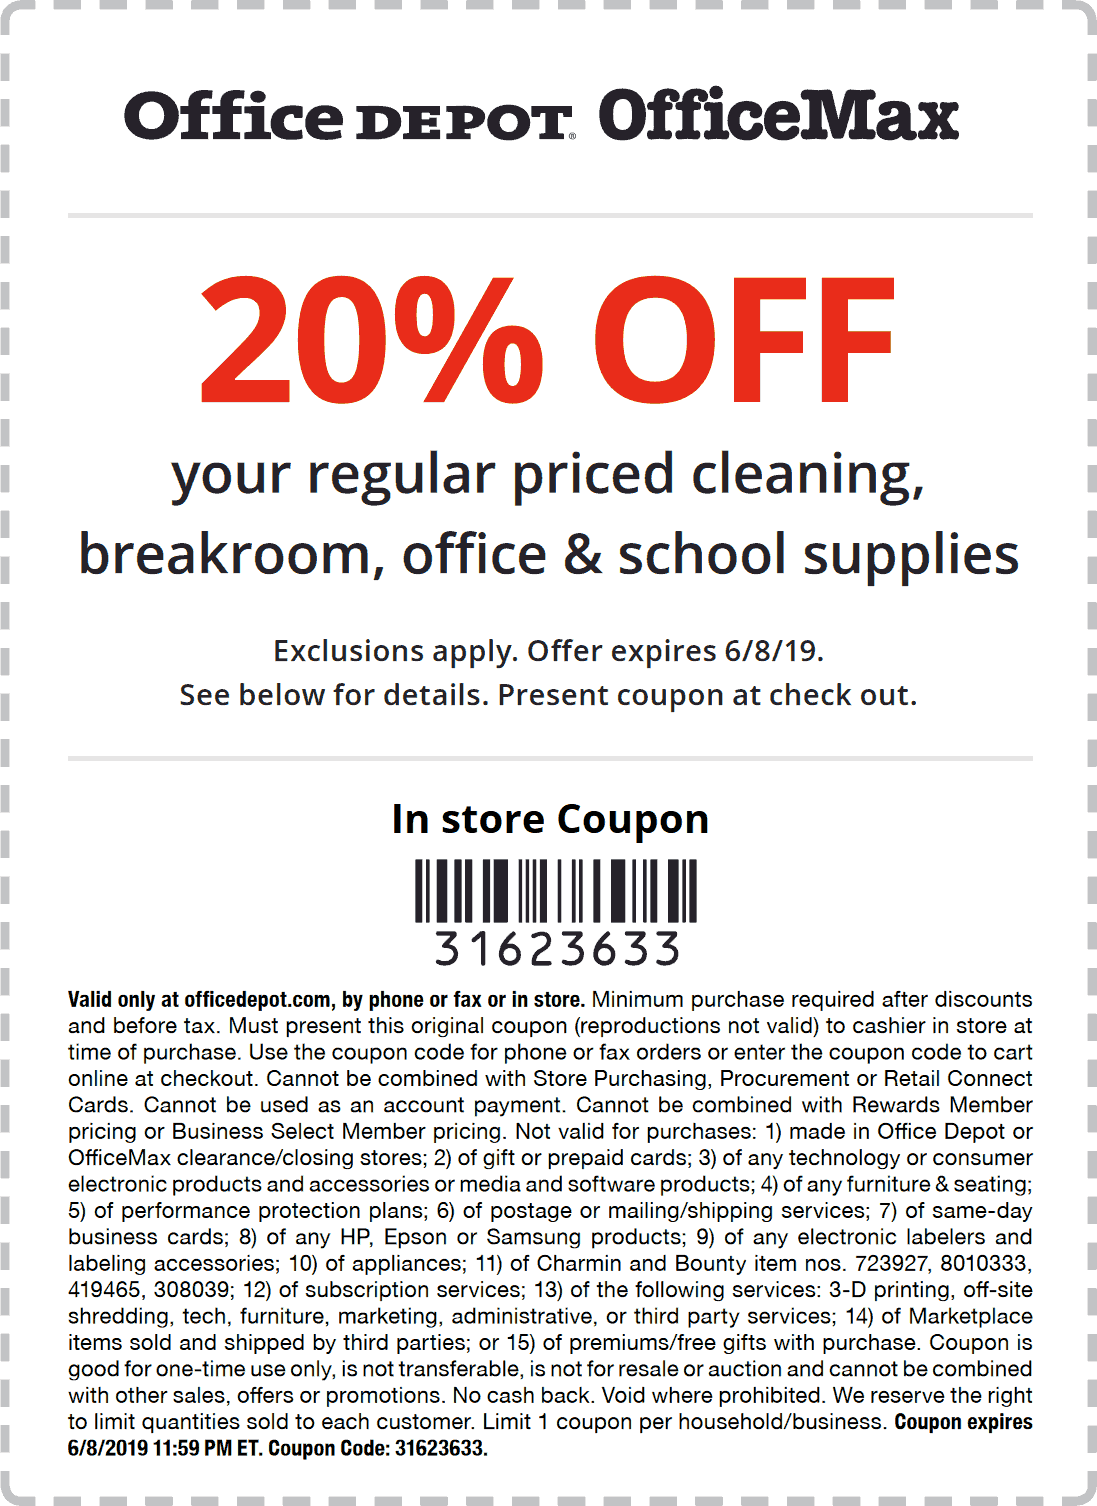 Office Depot Coupon November 2019 20% off at Office Depot & OfficeMax, or online via promo code 31623633